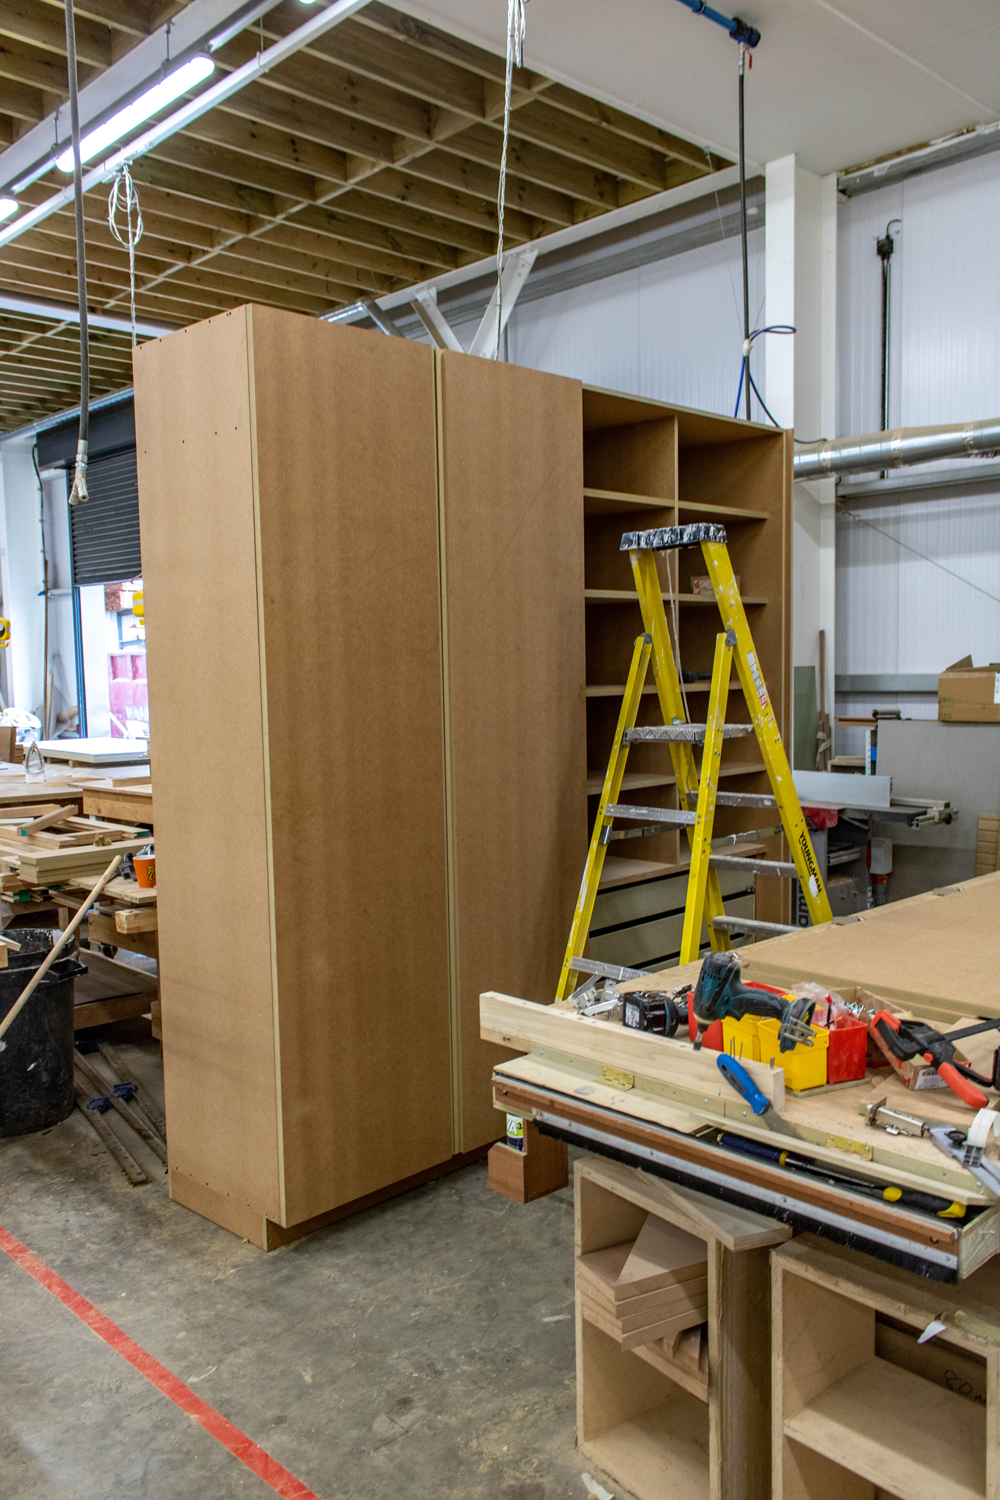 large wardrobe in k&d joinery workshop